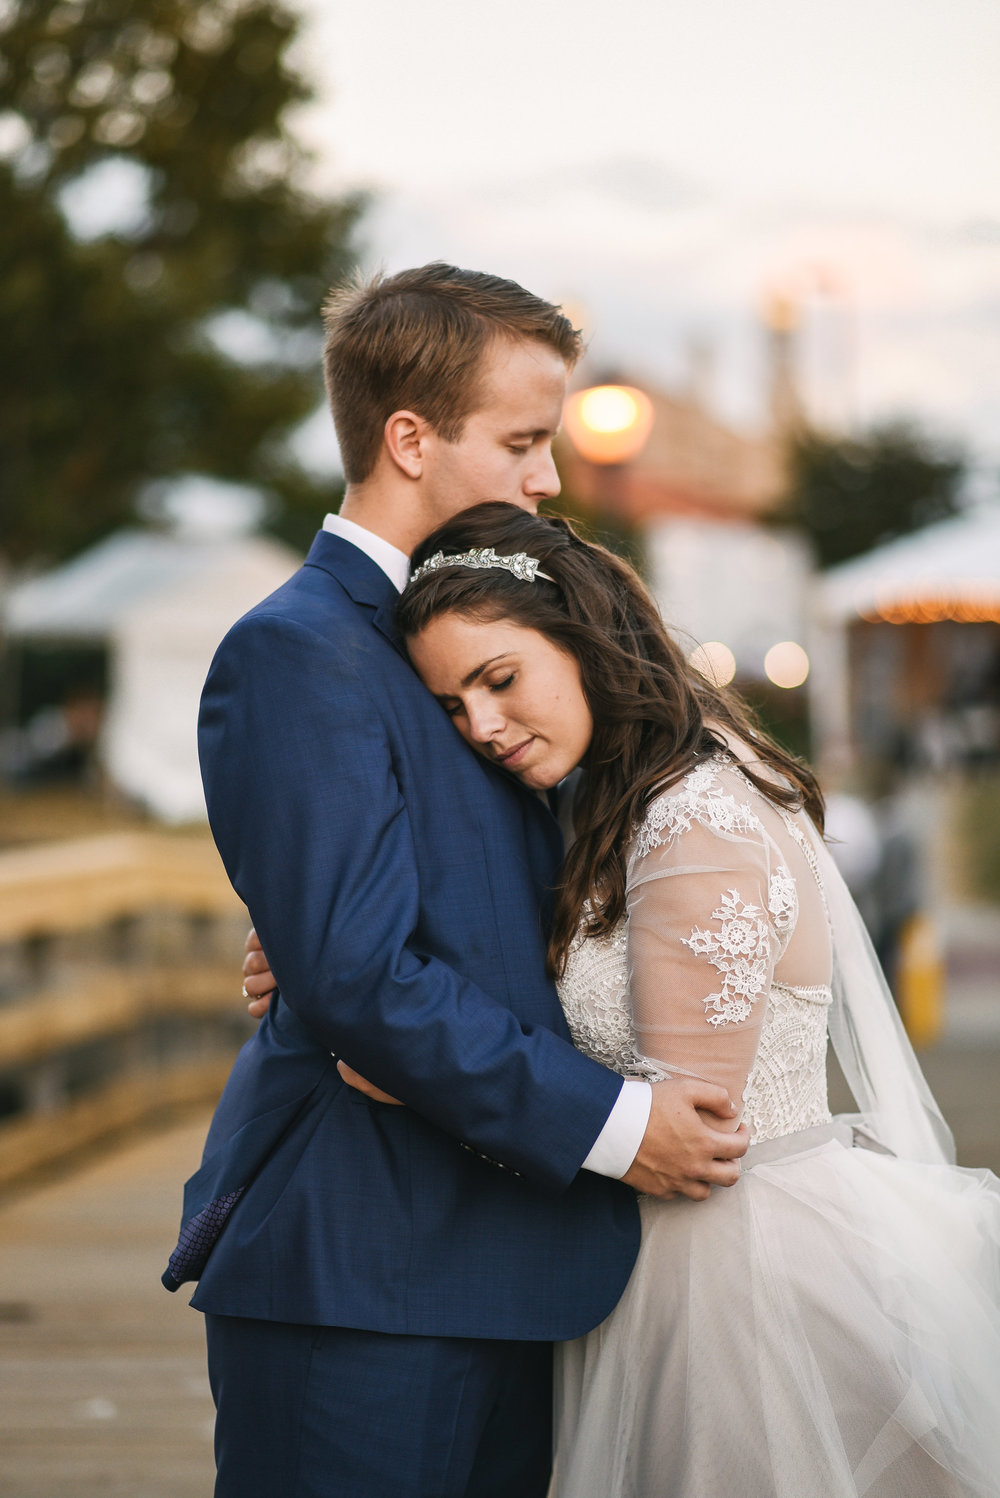 Baltimore, Canton, Modern, Outdoor Reception, Maryland Wedding Photographer, Romantic, Classic, Boston Street Pier Park, Bride and groom embracing, Lace wedding dress with sleeves, Blue suit